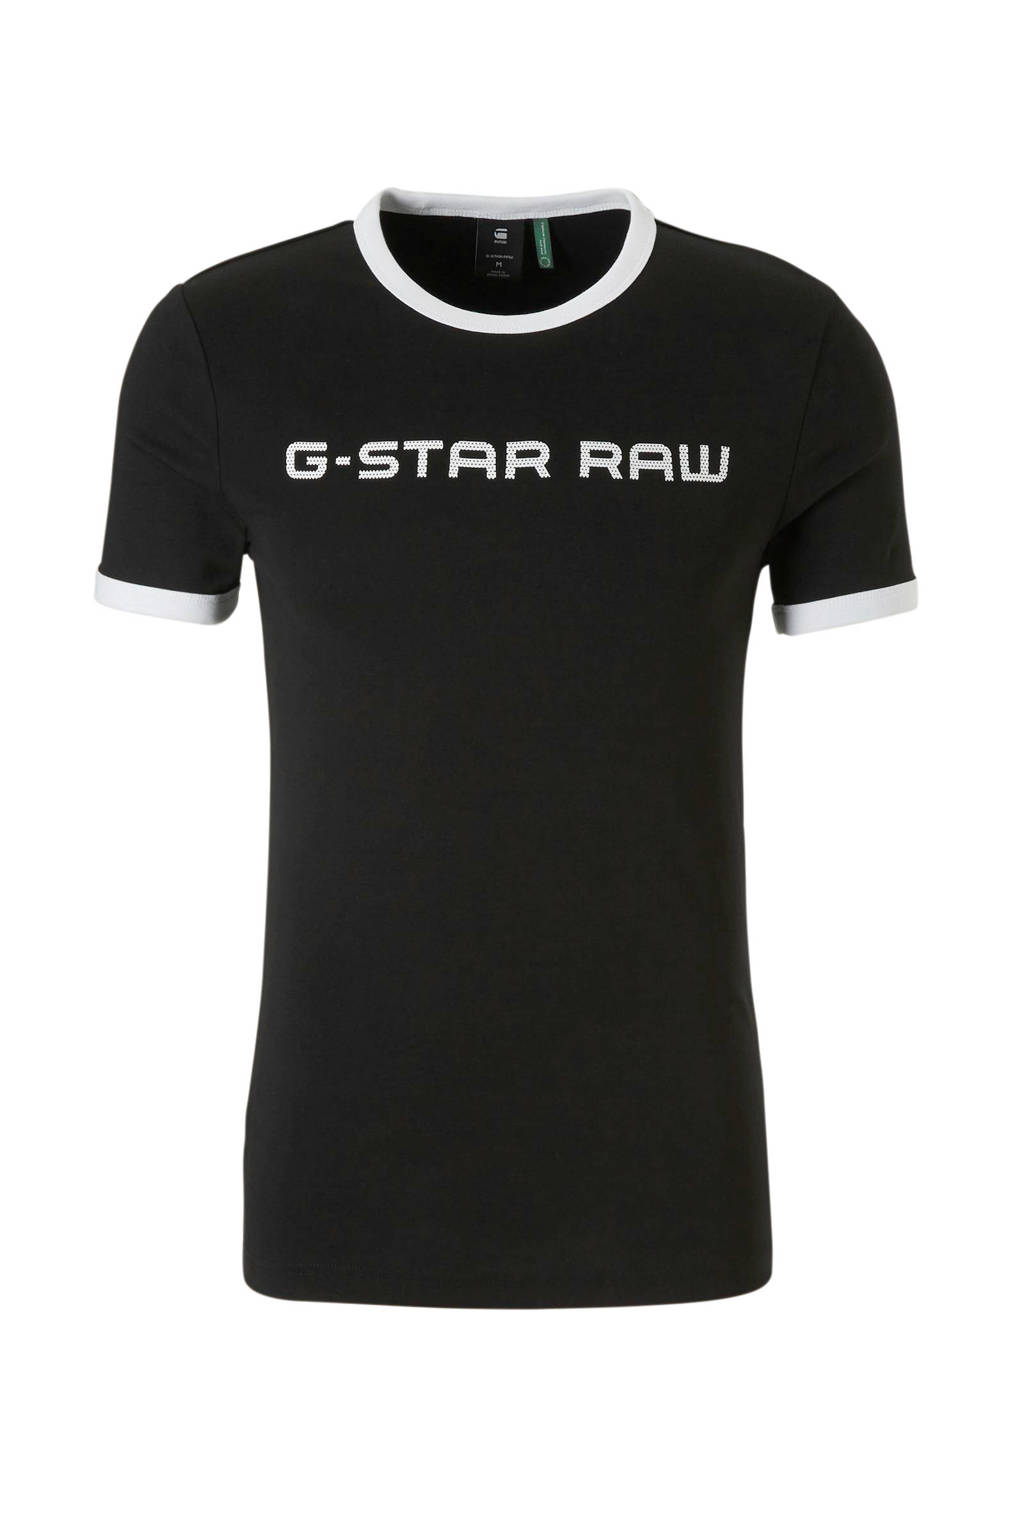 G-Star RAW T-shirt Xemoj, Zwart